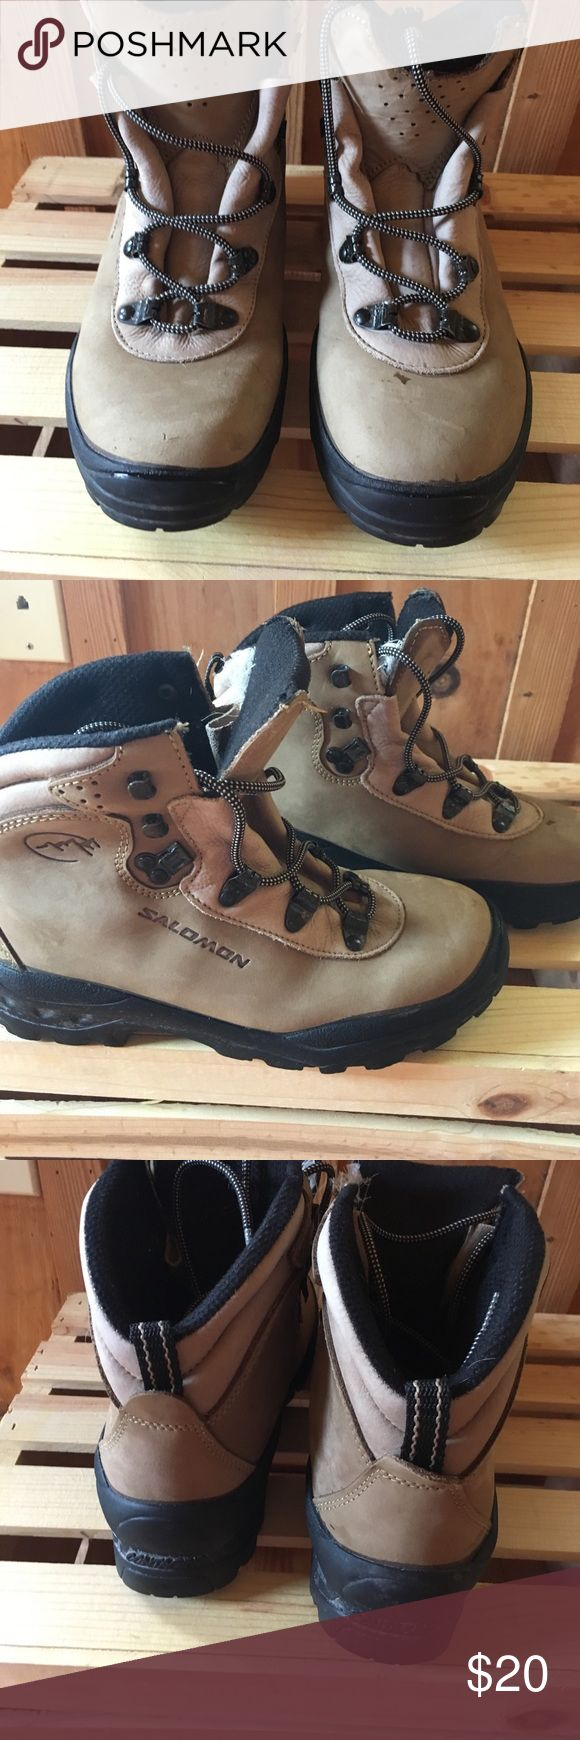 Salomon hiking boots Perfect for hiking in the fall. They do have scuffs and scratches please see pictures. They do not have the size on them however I am and six and they fit me great. Please let me know if you have any questions. Salomon Shoes Winter & Rain Boots